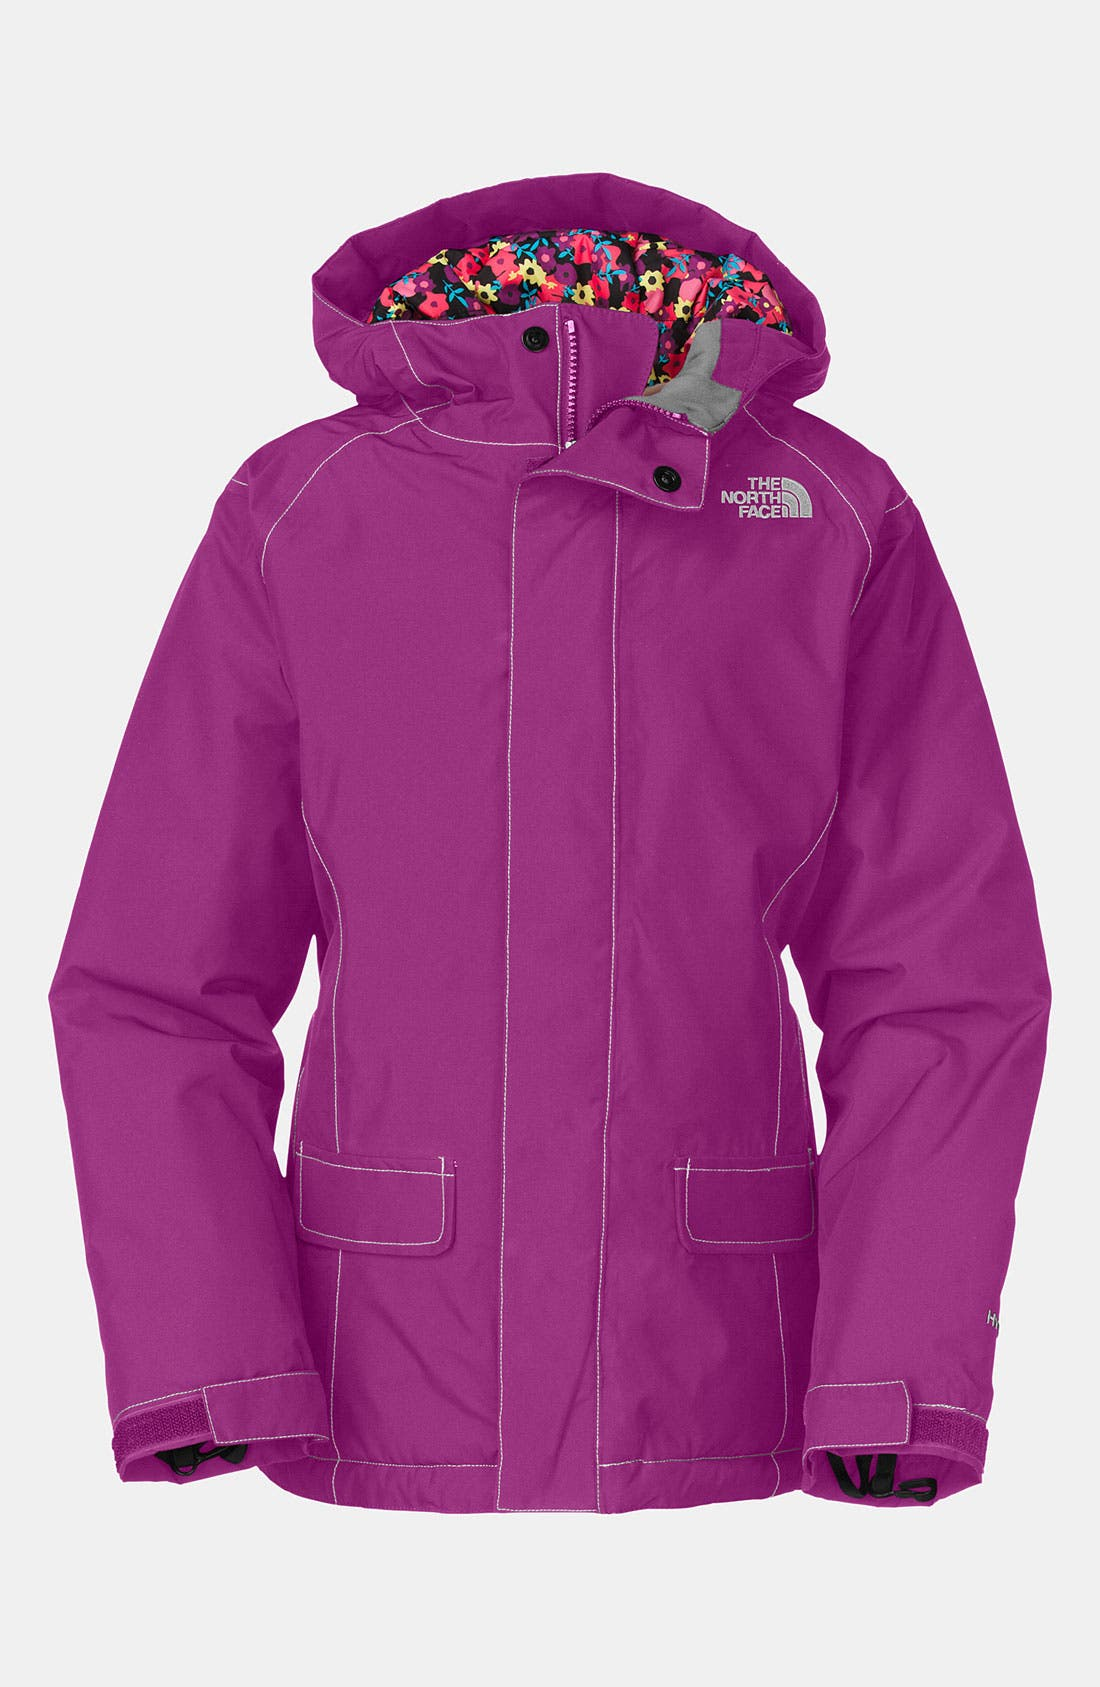 Main Image - The North Face 'Cameele' Jacket (Big Girls)